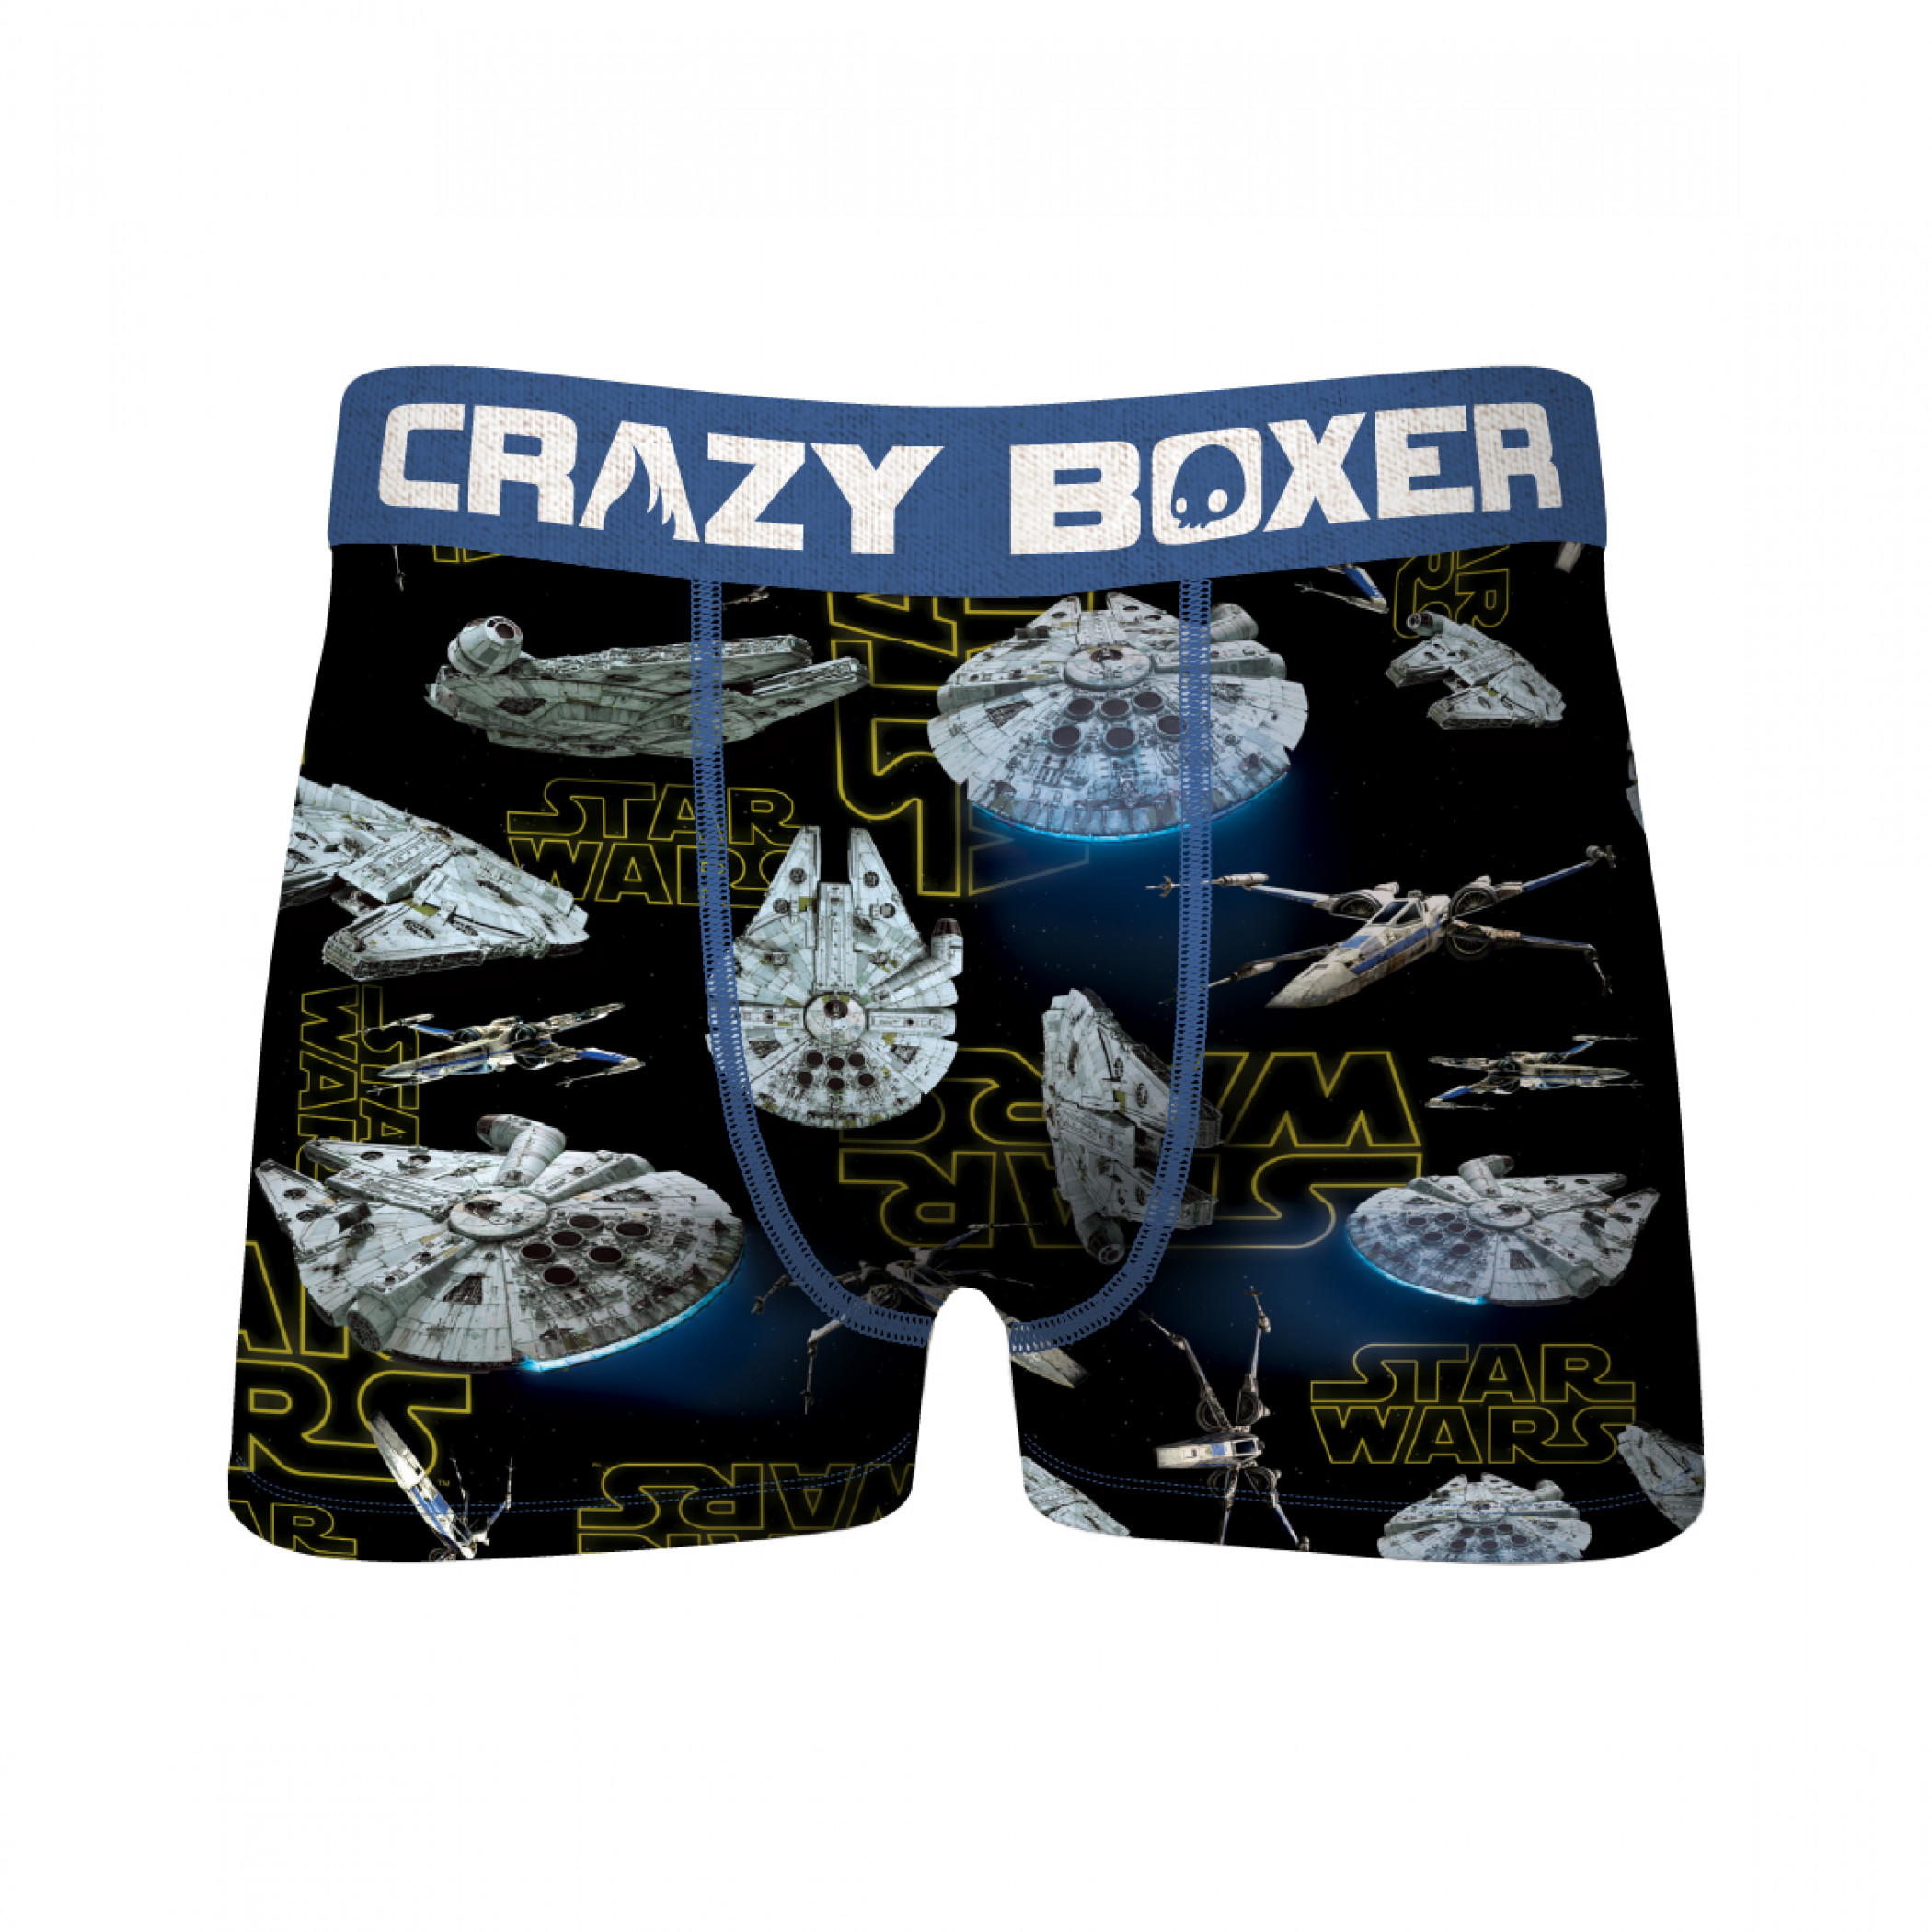 Star Wars Darth Vader and Millennium Falcon 2-Pack of Men's Crazy Boxer Briefs